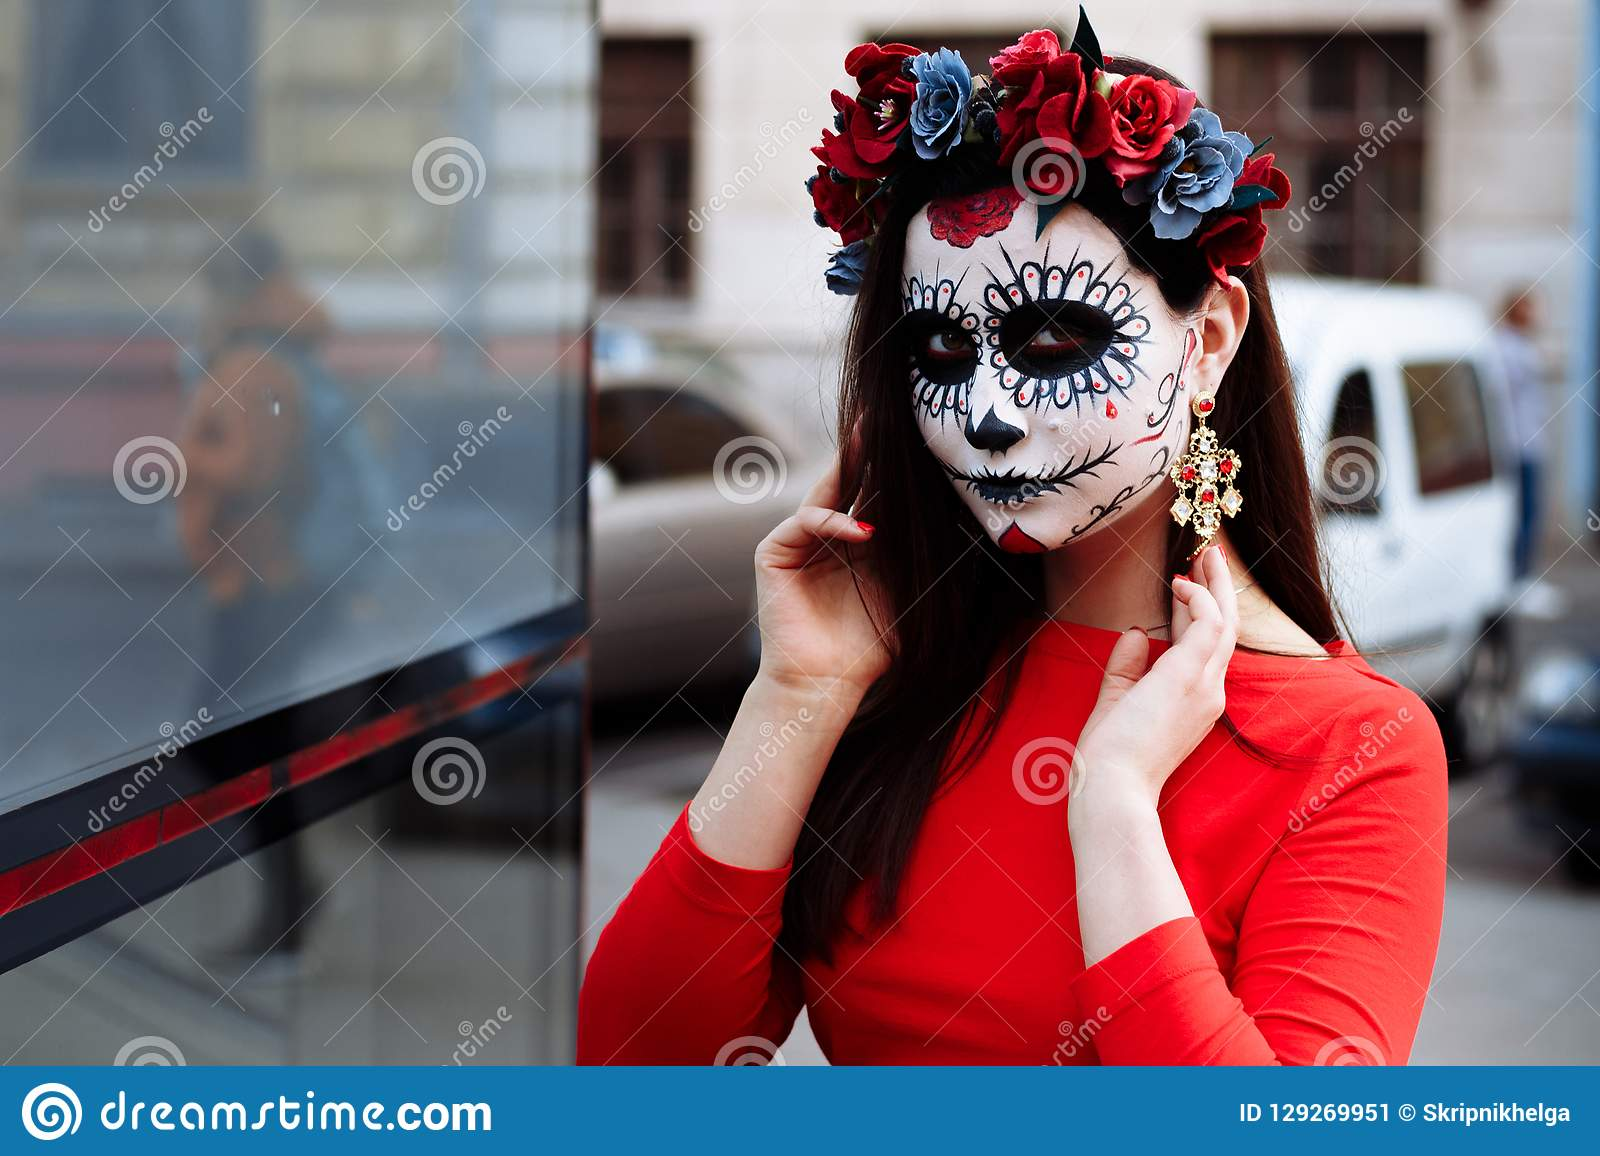 While not an official holiday, the traditional october 31 halloween celebration is much beloved by children in the united states, for whom the day is a chance to don … Portrait Of A Girl In The City With A Make Up Make Up For Halloween Day Of The Dead Zombies Dead Among Us Ghost Walk Of Skel Stock Image Image Of Catrin Horror